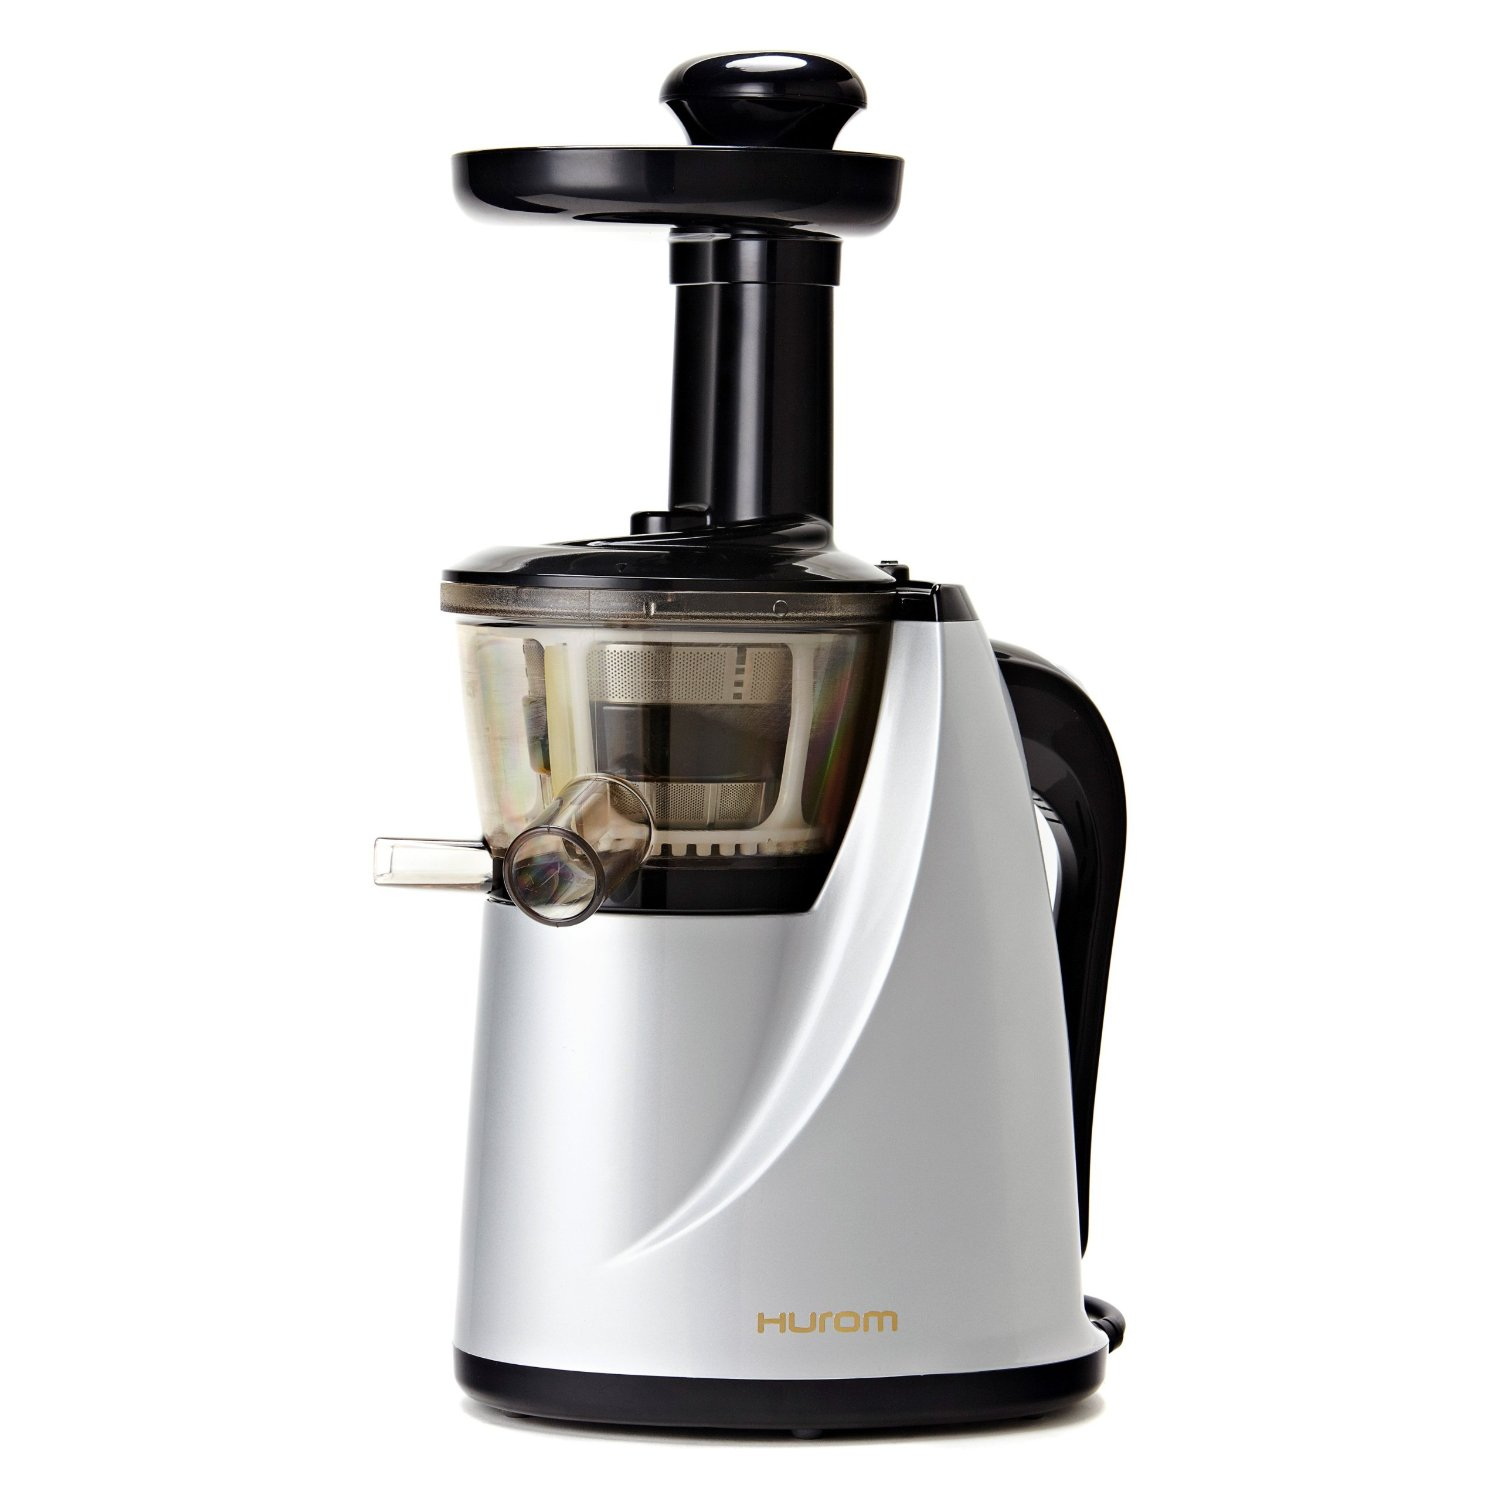 The Best Hurom Slow Juicer : Hurom HU-100 Masticating Slow Juicer Review - Best Cold Press Juicers